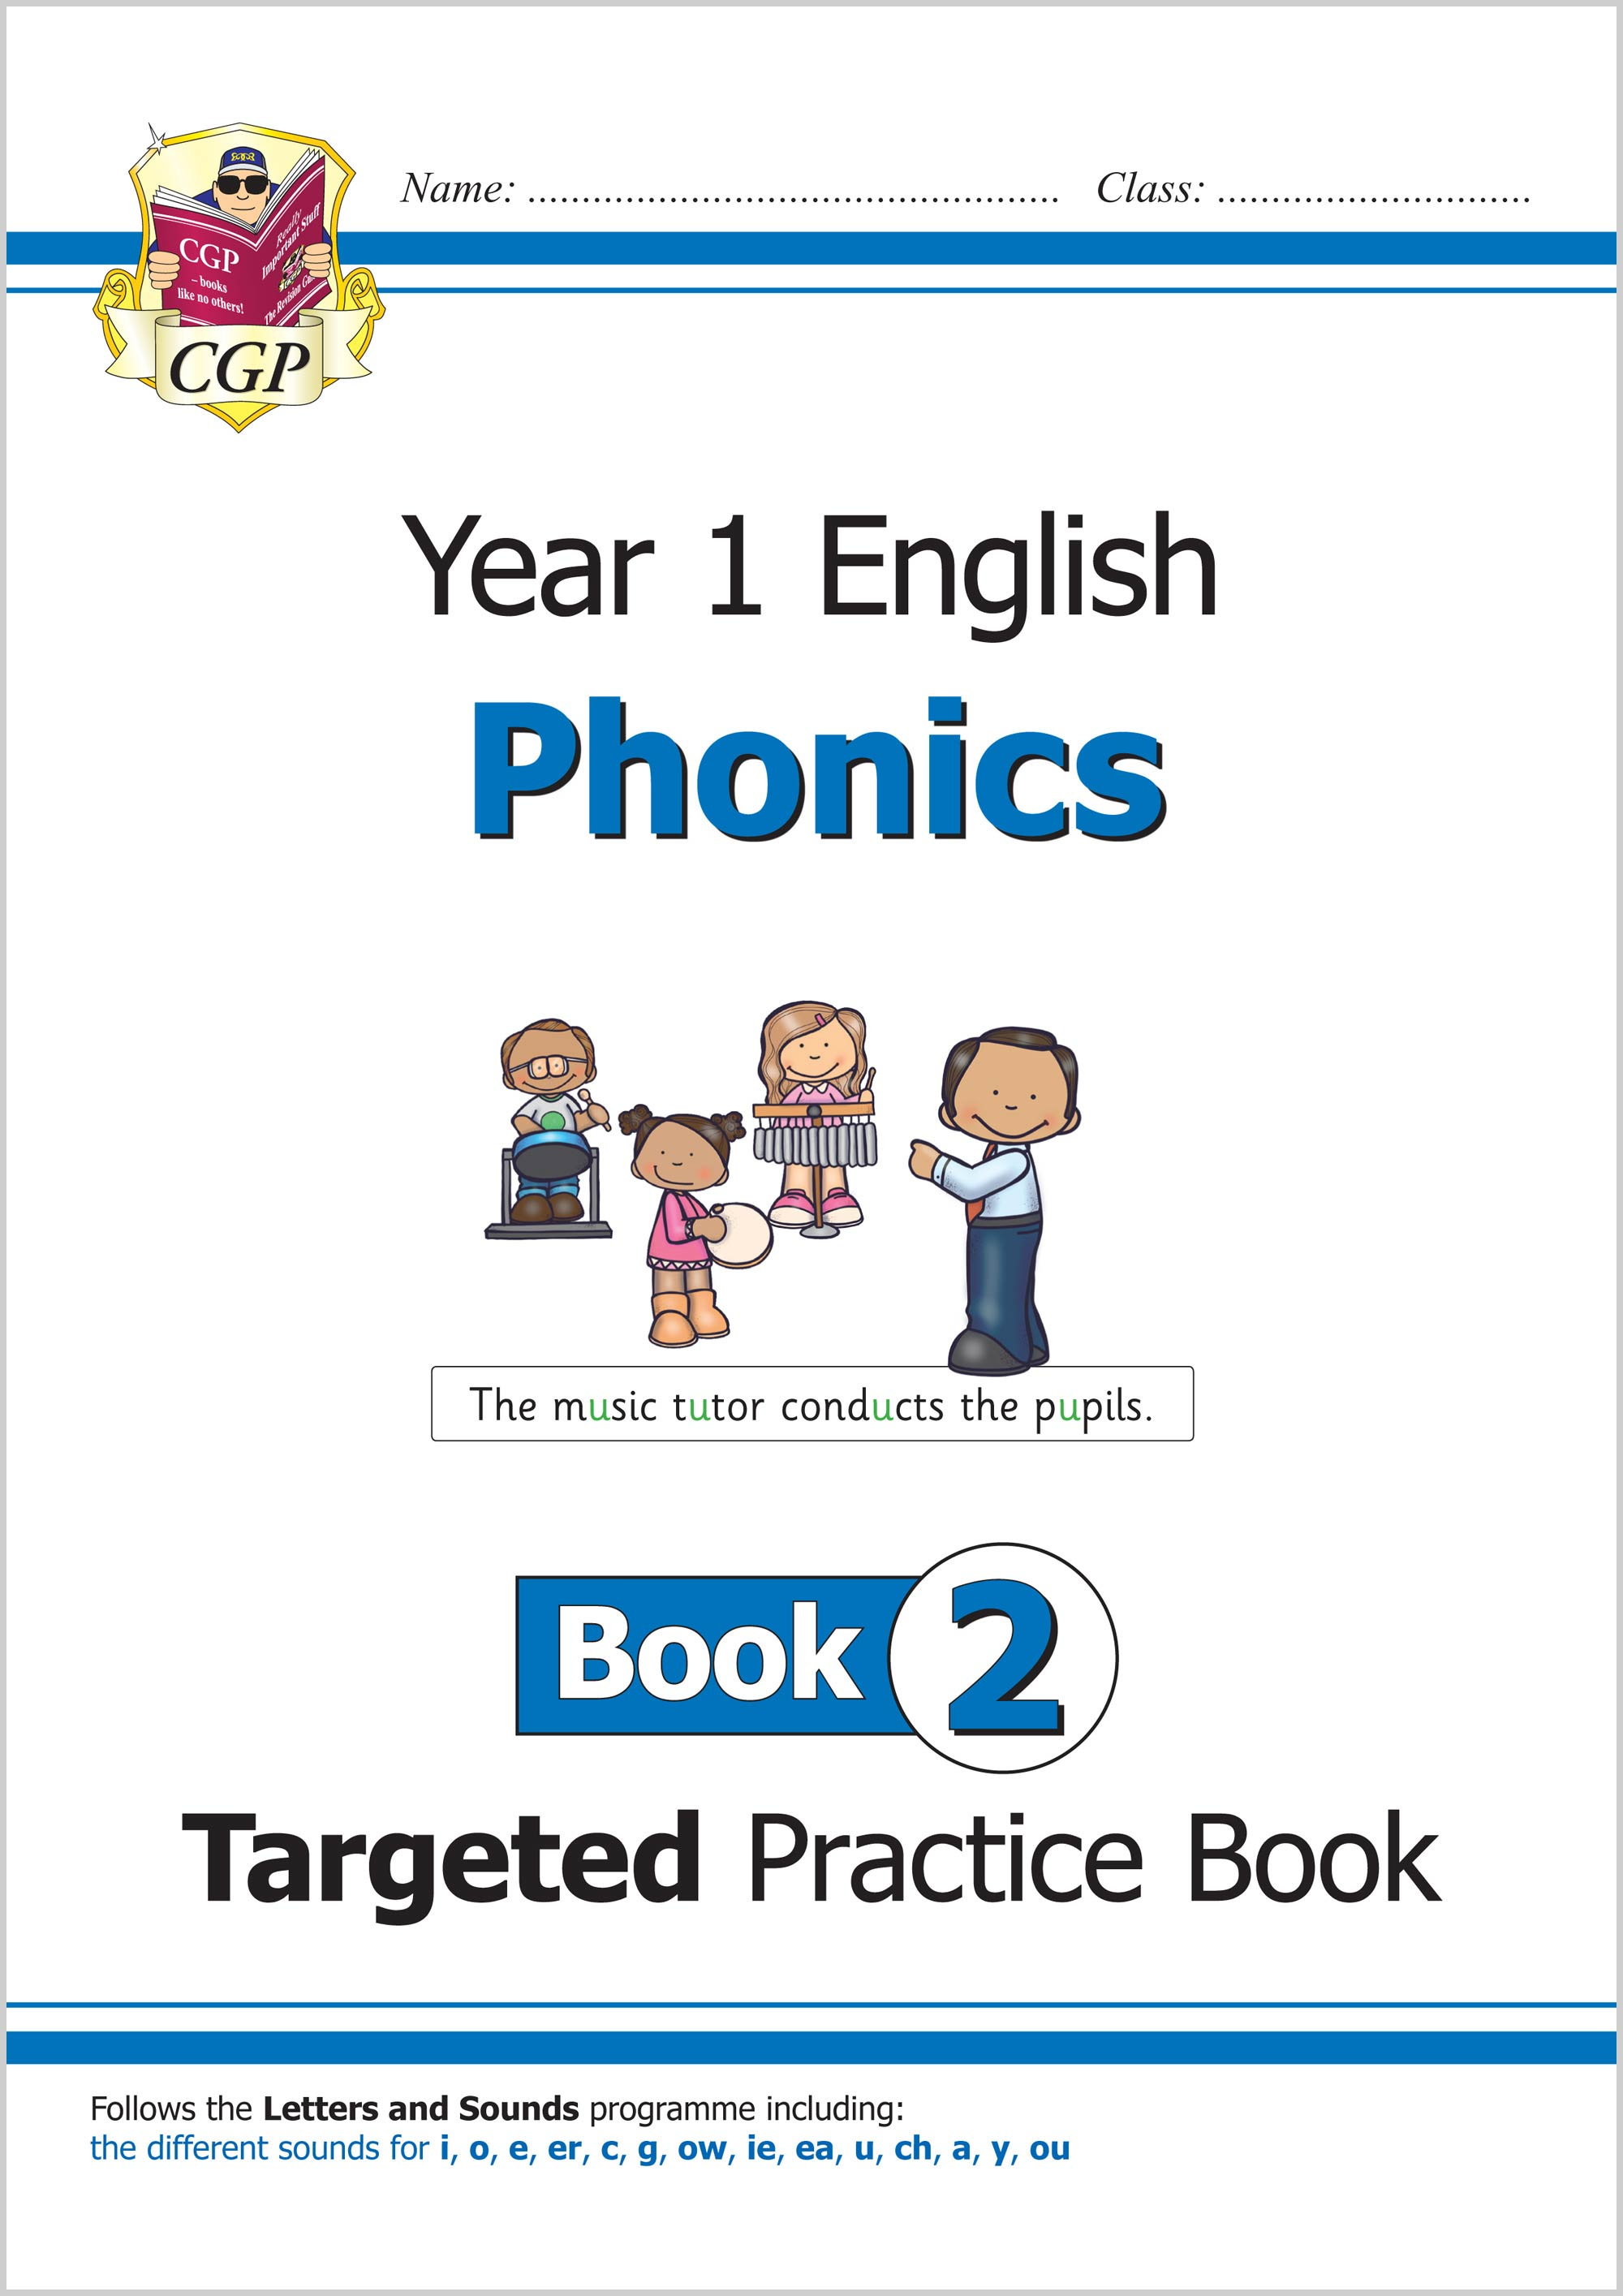 E1OW211 - KS1 English Targeted Practice Book: Phonics - Year 1 Book 2